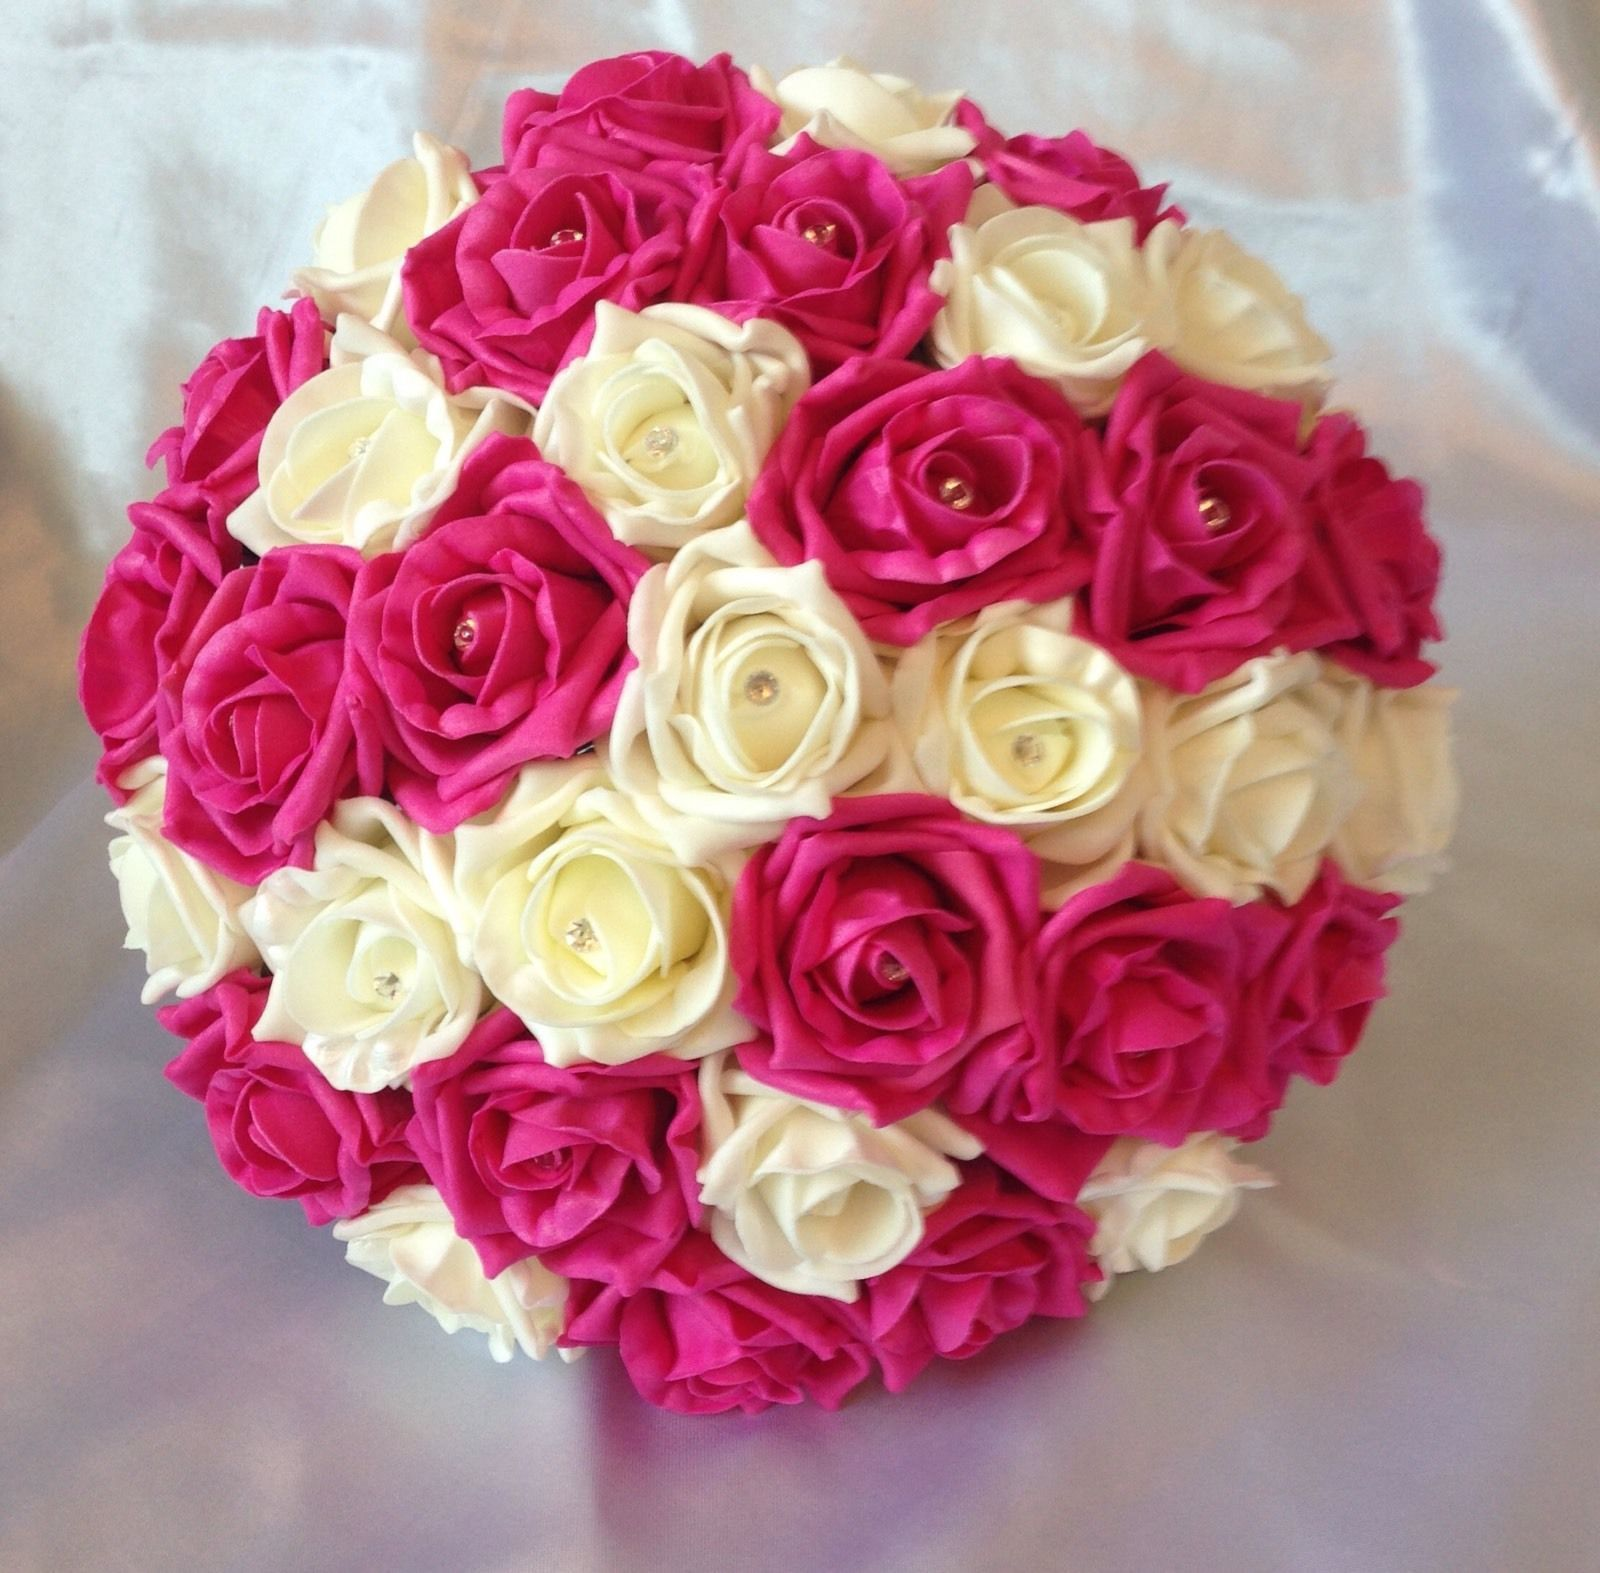 Pink Wedding Bouquets: ARTIFICIAL FLOWERS HOT PINK IVORY FOAM ROSE BRIDE WEDDING